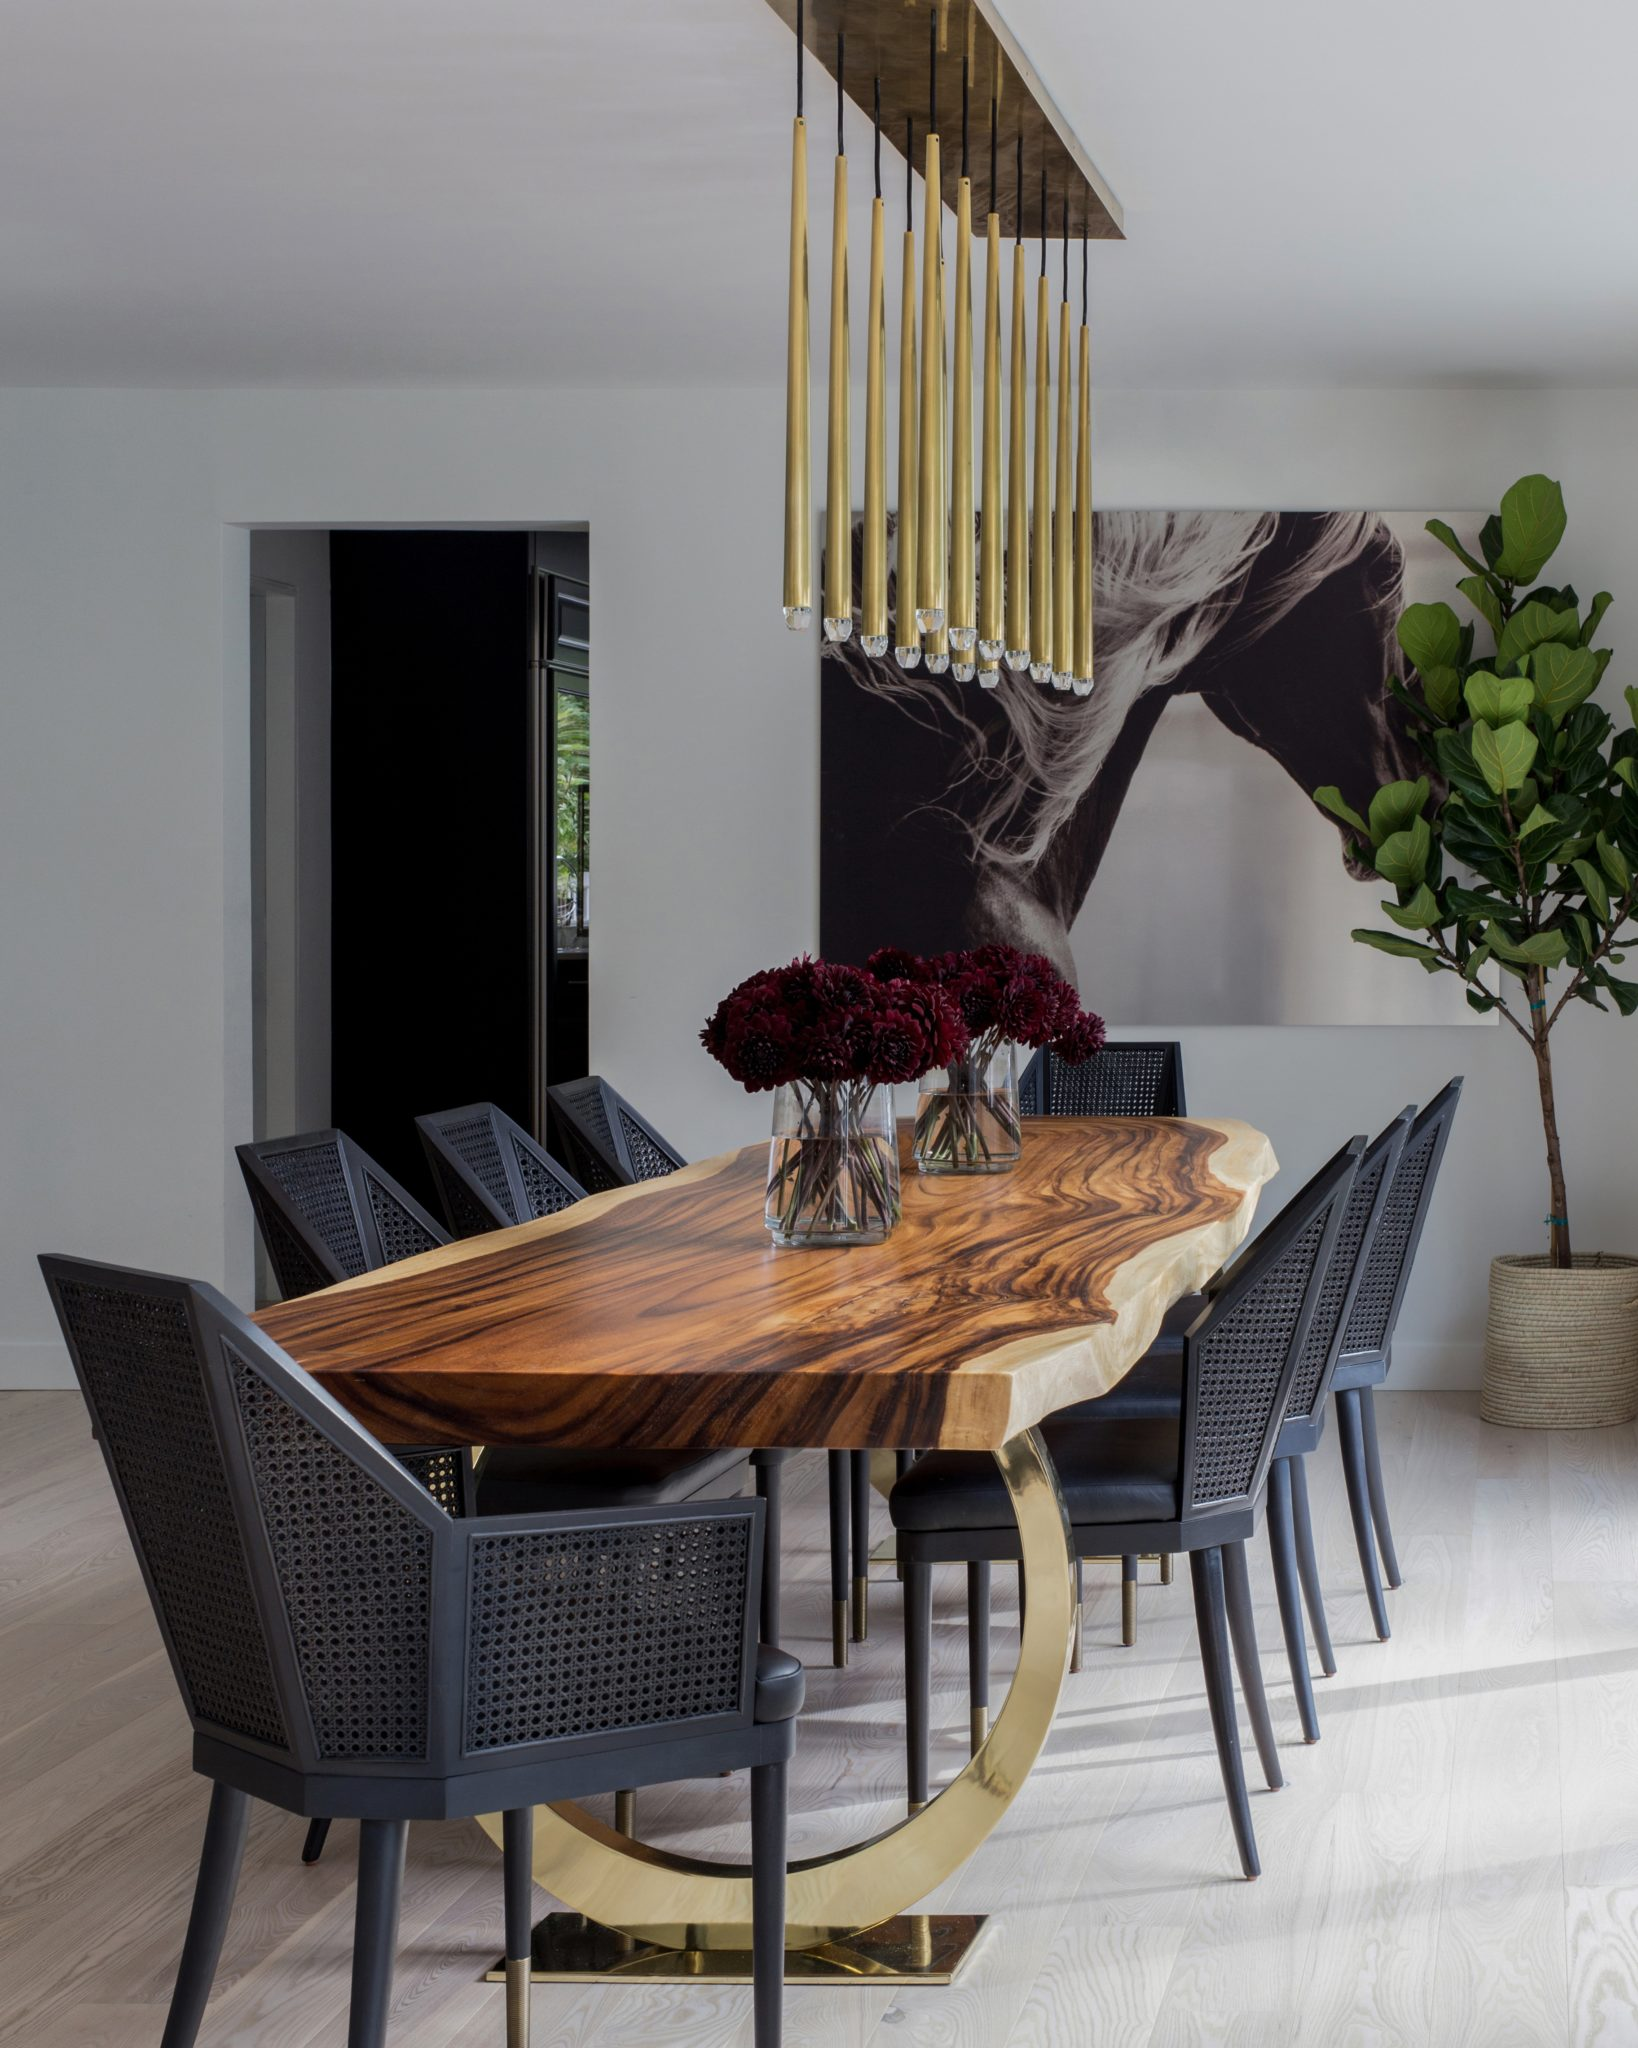 """10. Shop Custom Furnishings   Ensure that your space is unlike any other when you use custom furnishings. A one-of-a-kind table or unique dining chairs will help a dining room stand out.Thecustom, live-edge wood table is the focal point ofthis space. """"The floor plan of this house is very open and the dining table is truly in the heart of the home,"""" says Lisa Hershman of Abaca Interiors. """"The intention here was to meld the husband's love of organic materials with the wife's penchant for glam. The live-edge Chamcha wood slab and brass legs provided a contrast that united both their styles and truly made the piece feel unique to the home."""""""